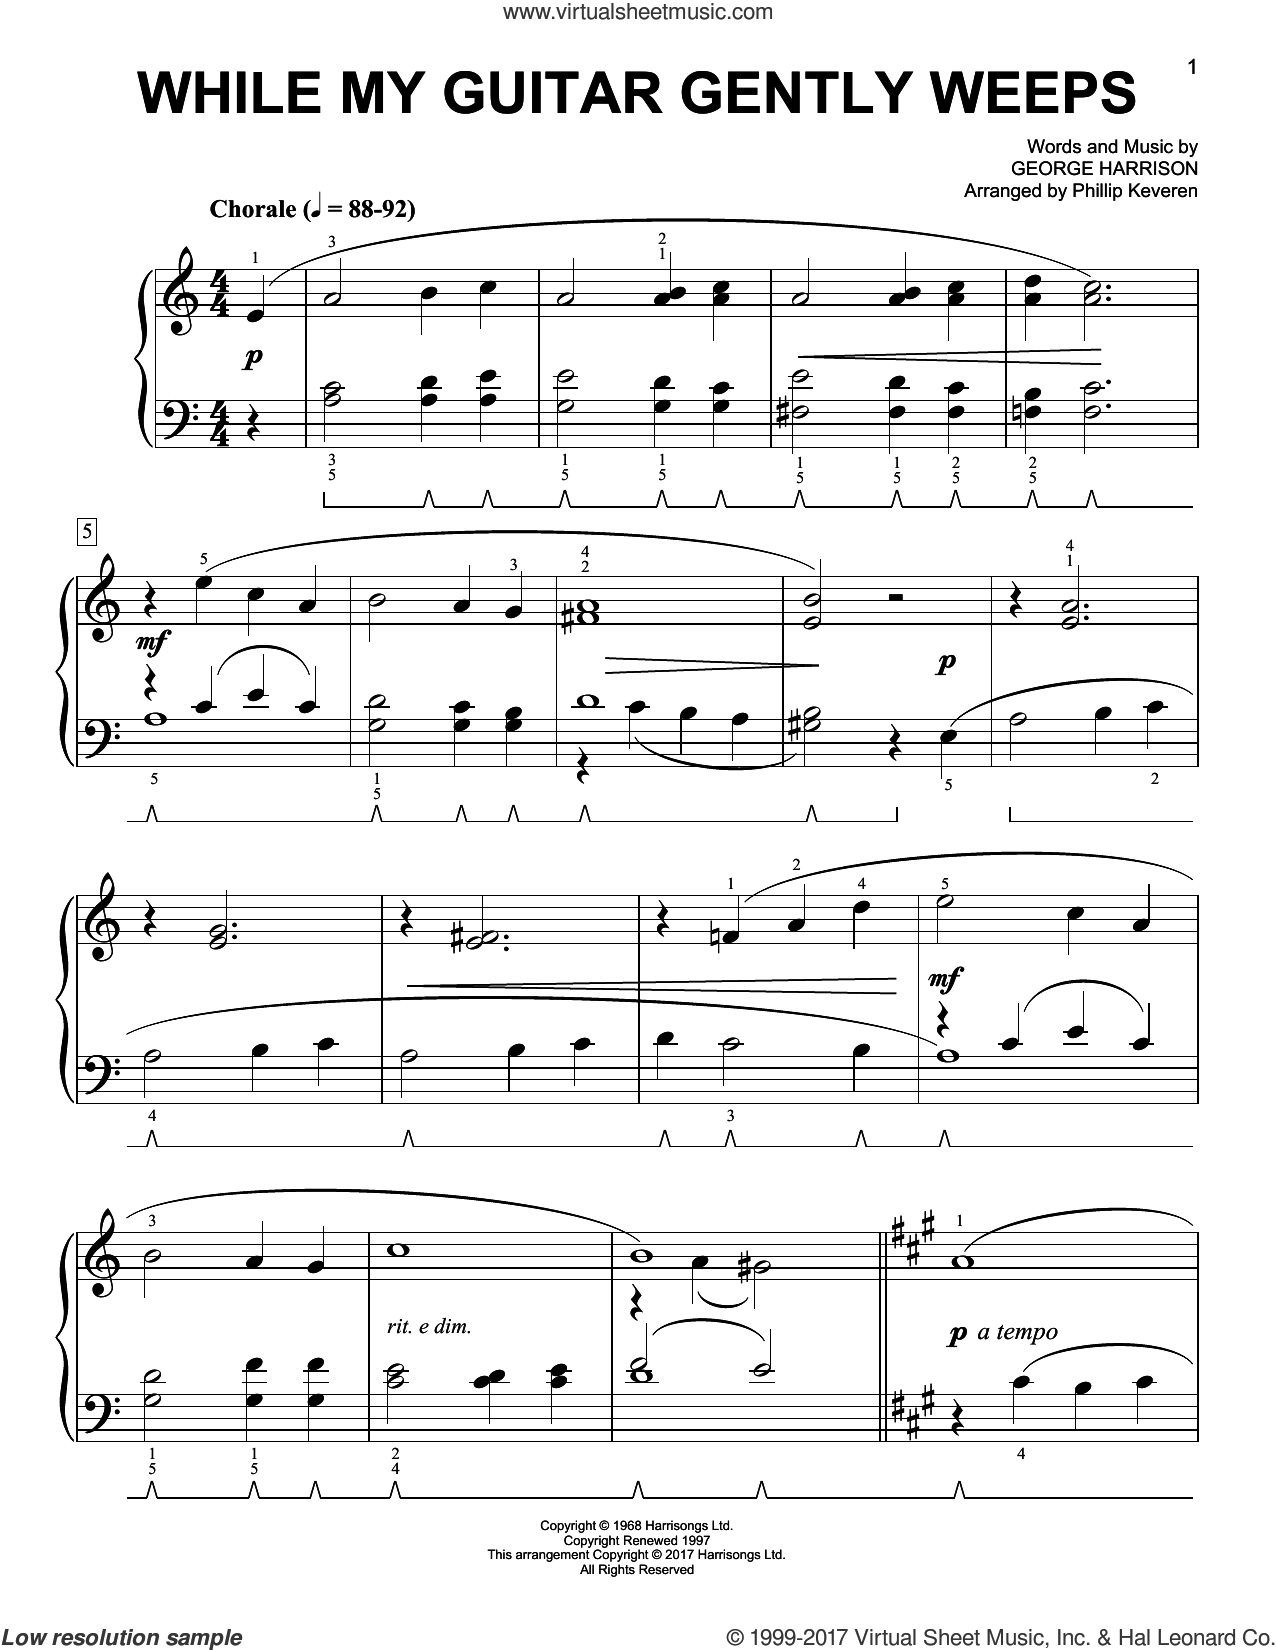 While My Guitar Gently Weeps [Classical version] (arr. Phillip Keveren) sheet music for piano solo by George Harrison, Phillip Keveren and The Beatles, easy skill level